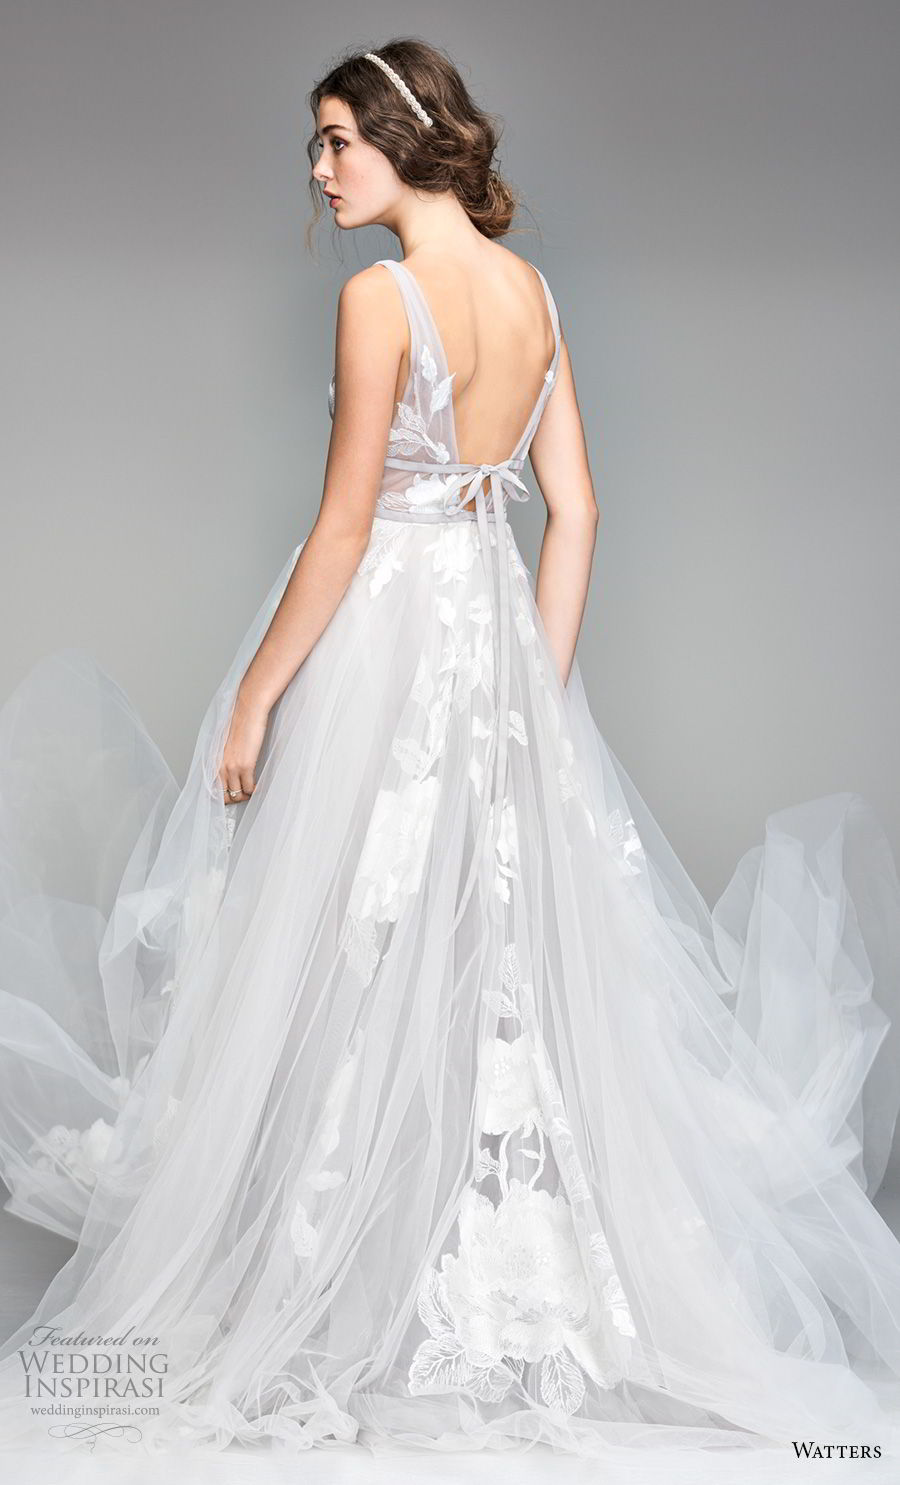 willow by watters spring 2018 sleeveless deep v neck heavily embellished bodice romantic soft a line wedding dress v back sweep train (1) bv